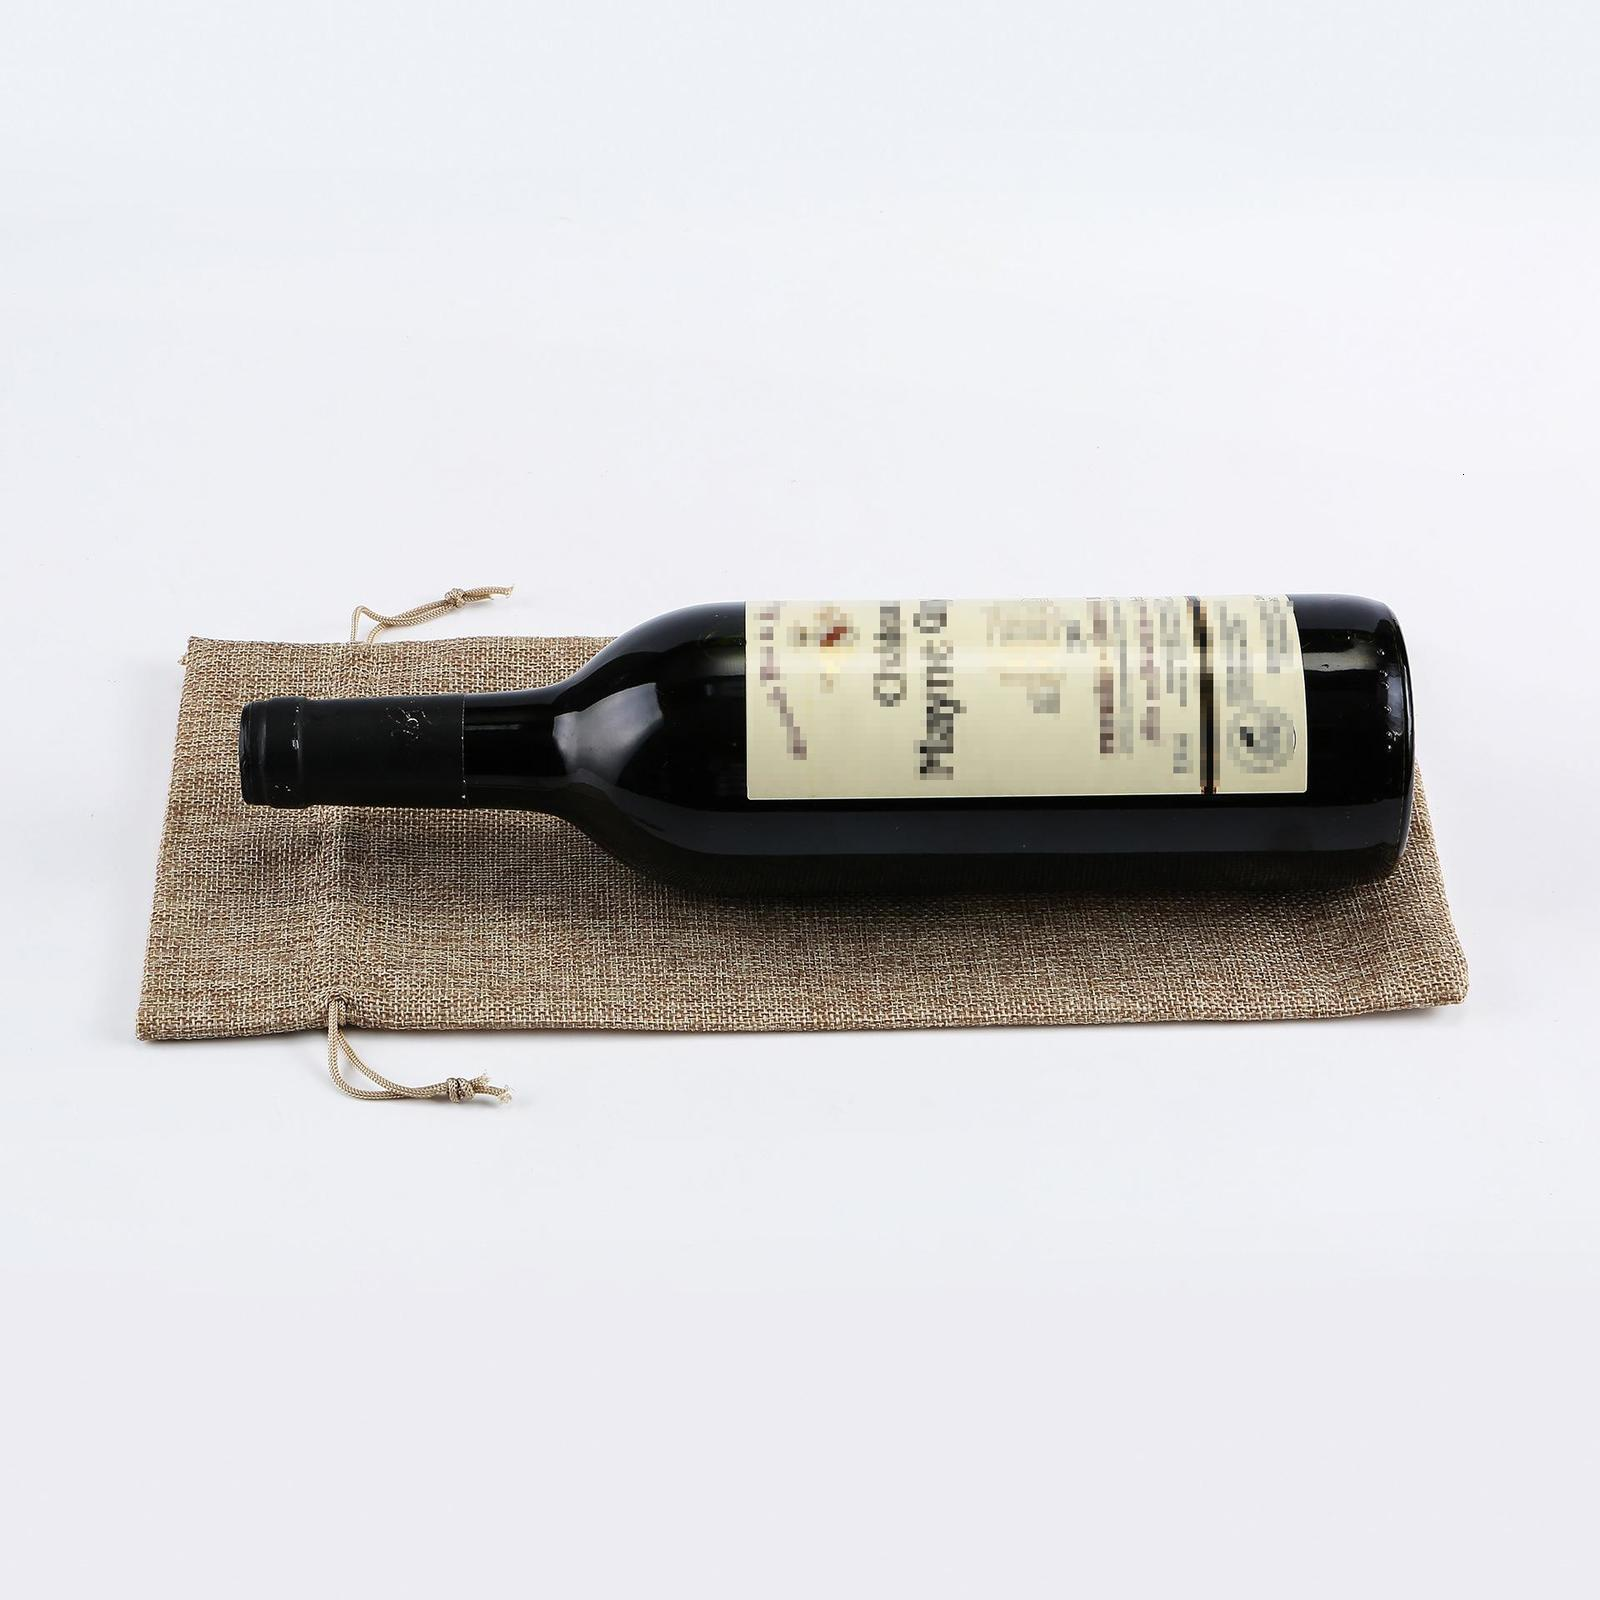 Xmas Burlap Wine Bags Bottle Champagne Wine Bottle Covers Gift Pouch Packaging Bag Wedding Party Christmas Decoration 15*35cm W-00325